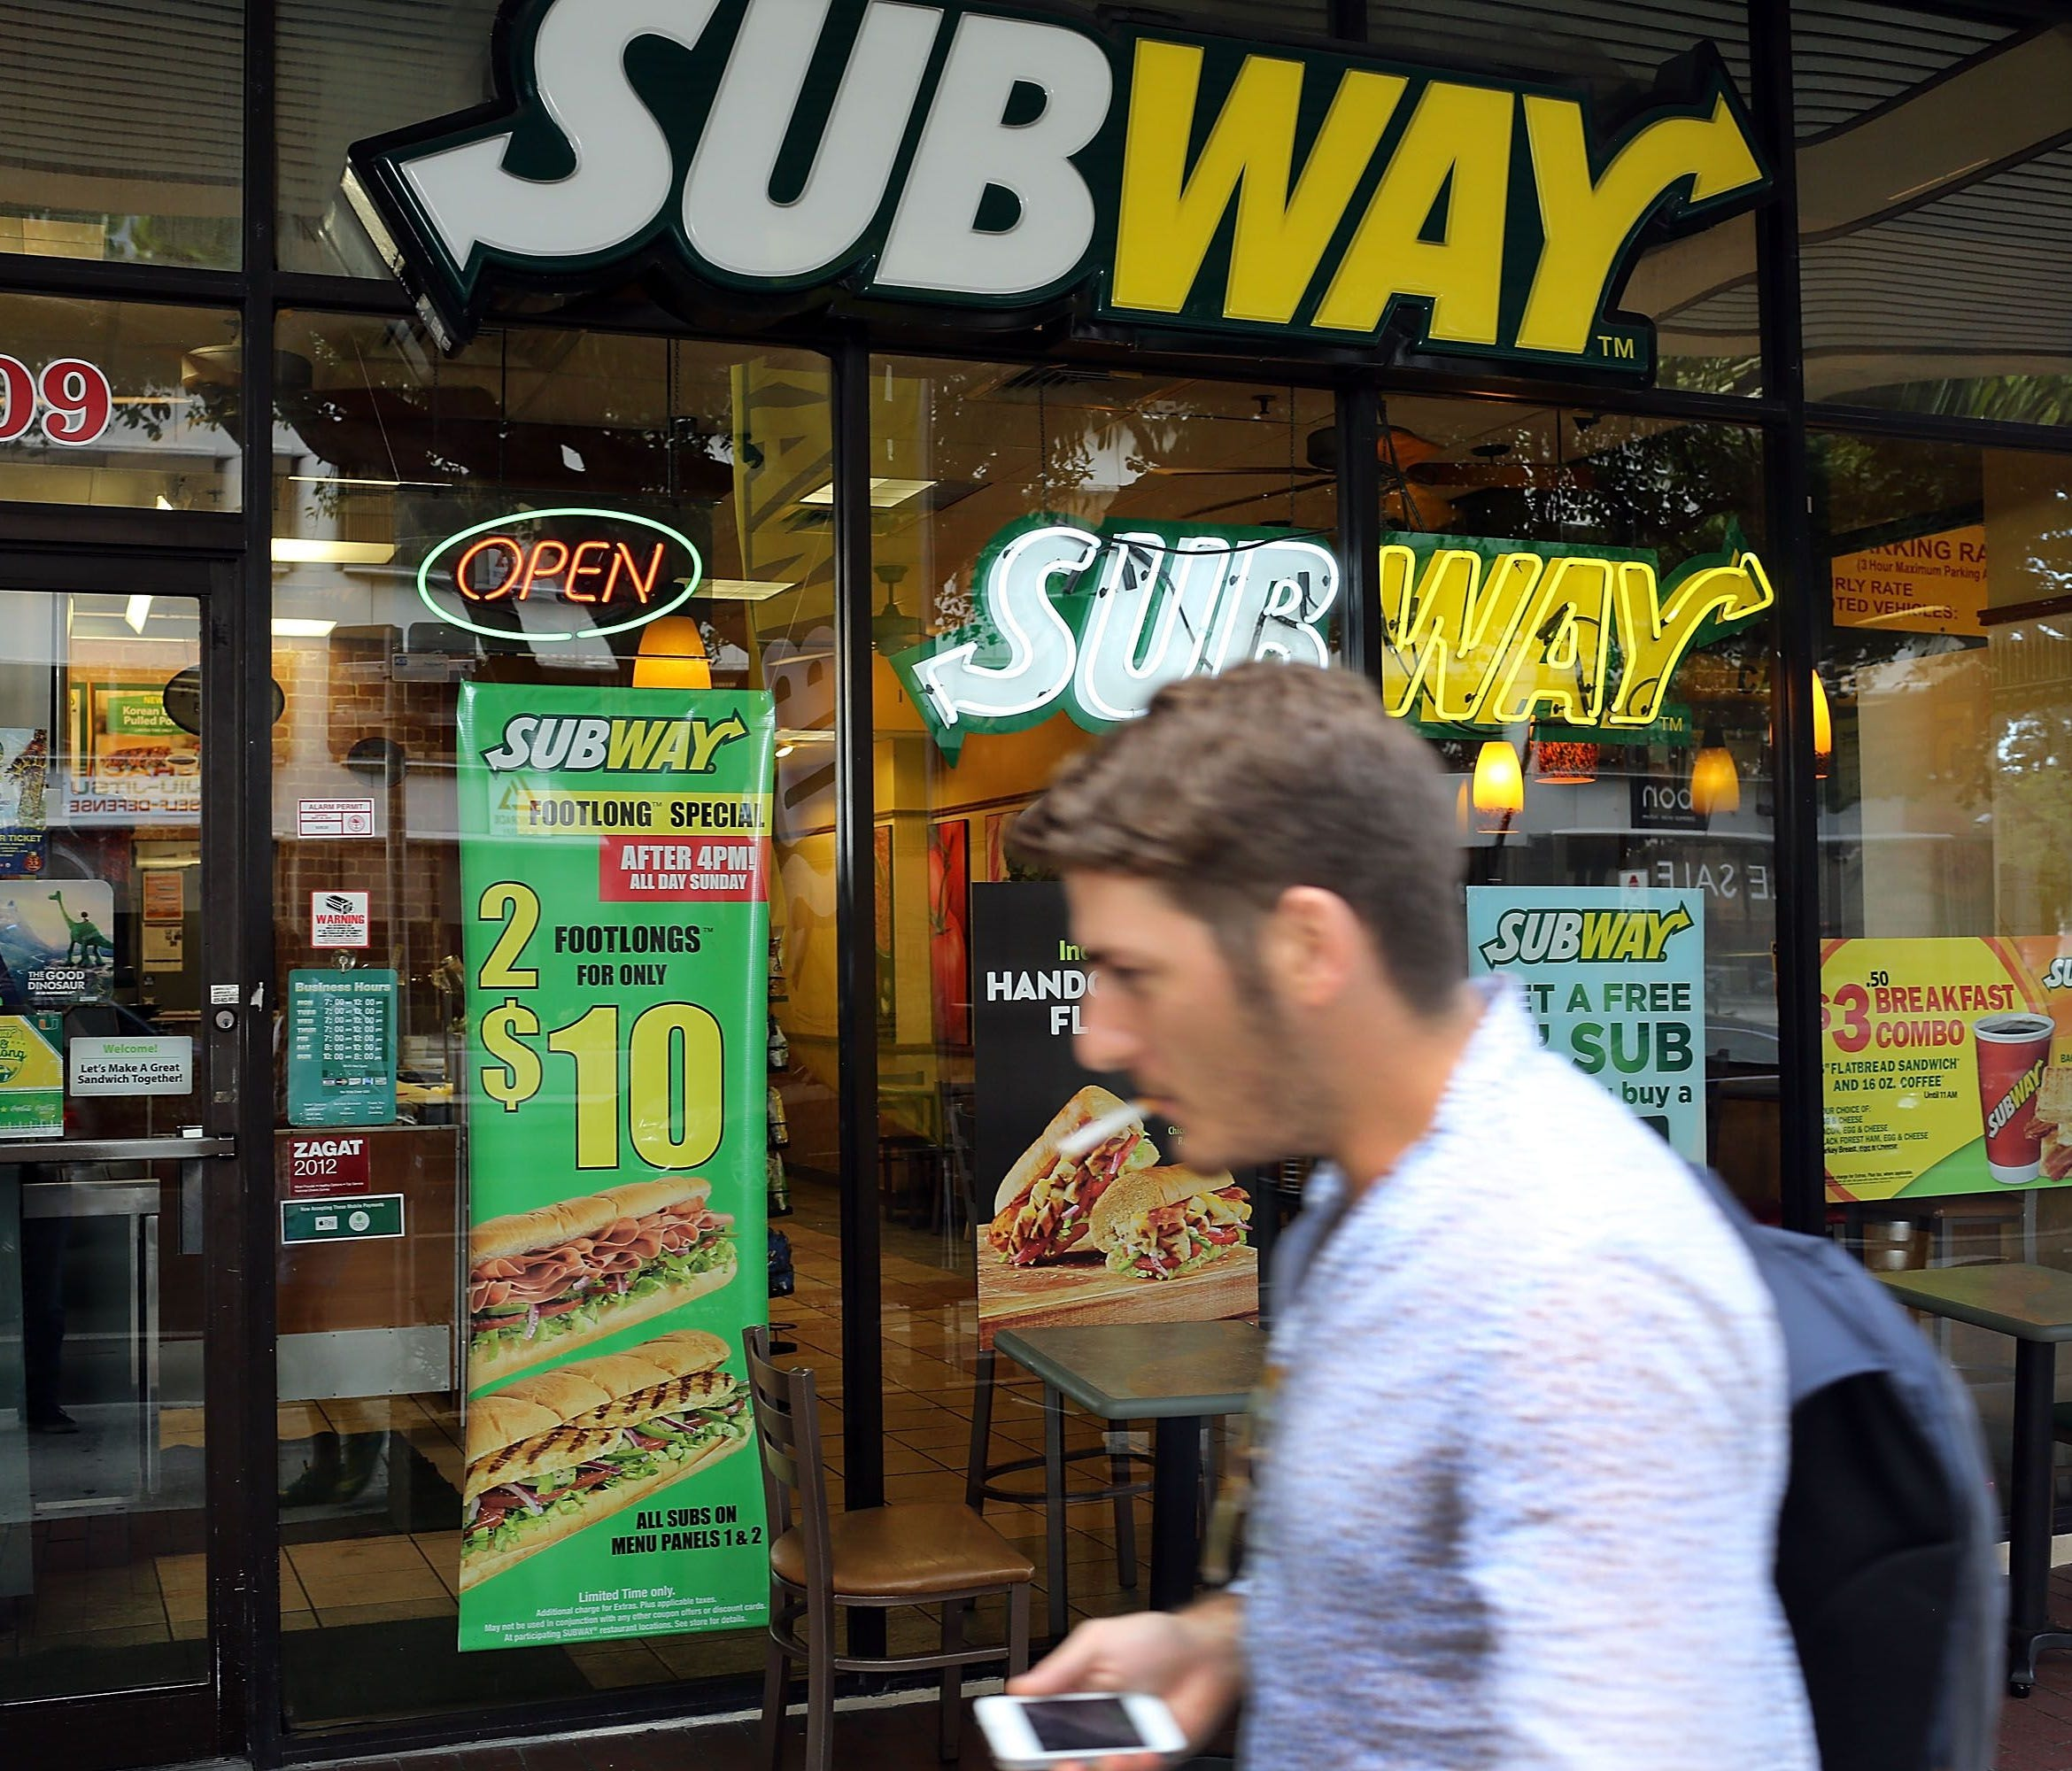 Subway Restaurants is planning to shutter an estimated500 locations in the U.S. The Milford, Conn.-based chain wants to focus on better restaurant locations and boosting sales,according to Bloomberg. High on its priorities list is overseas expansio